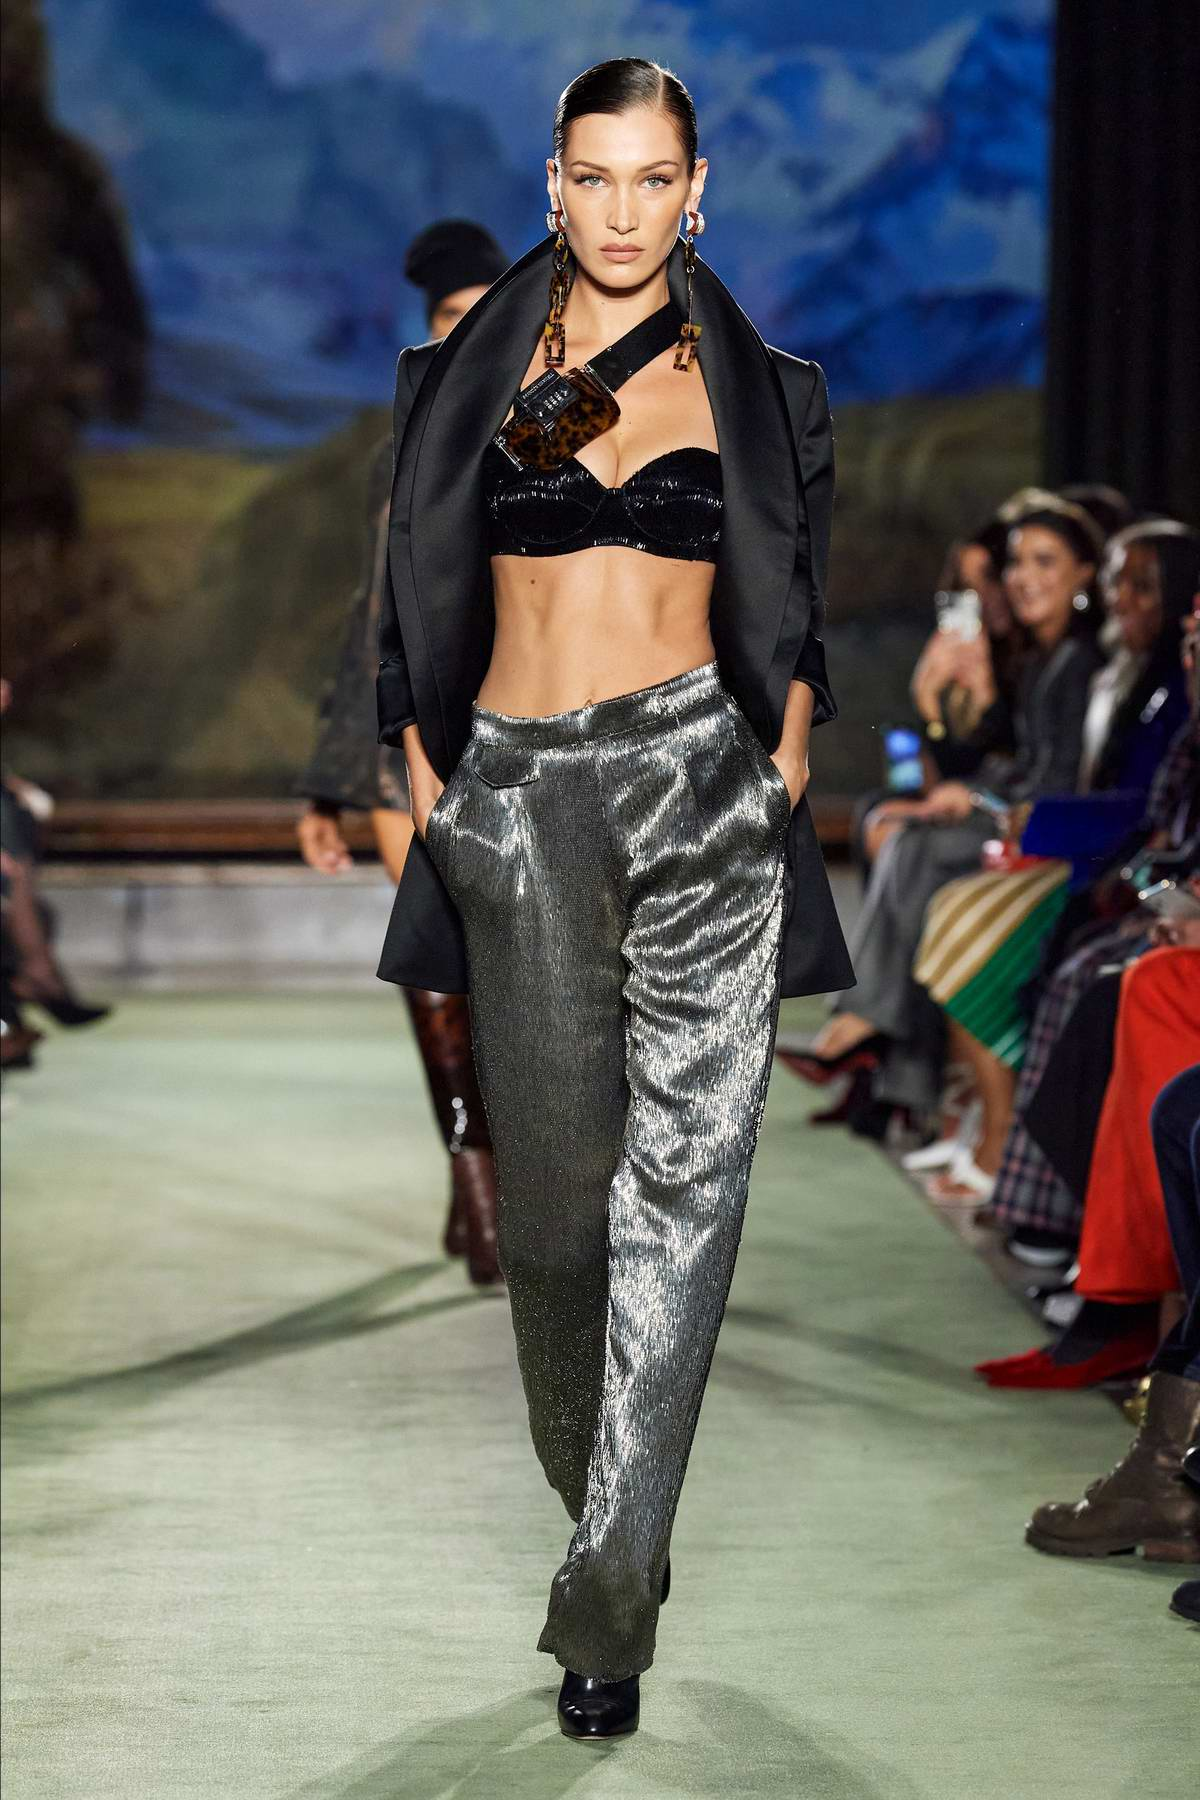 Bella Hadid walks the the runway for Brandon Maxwell Fall/Winter 2020 during NYFW in New York City